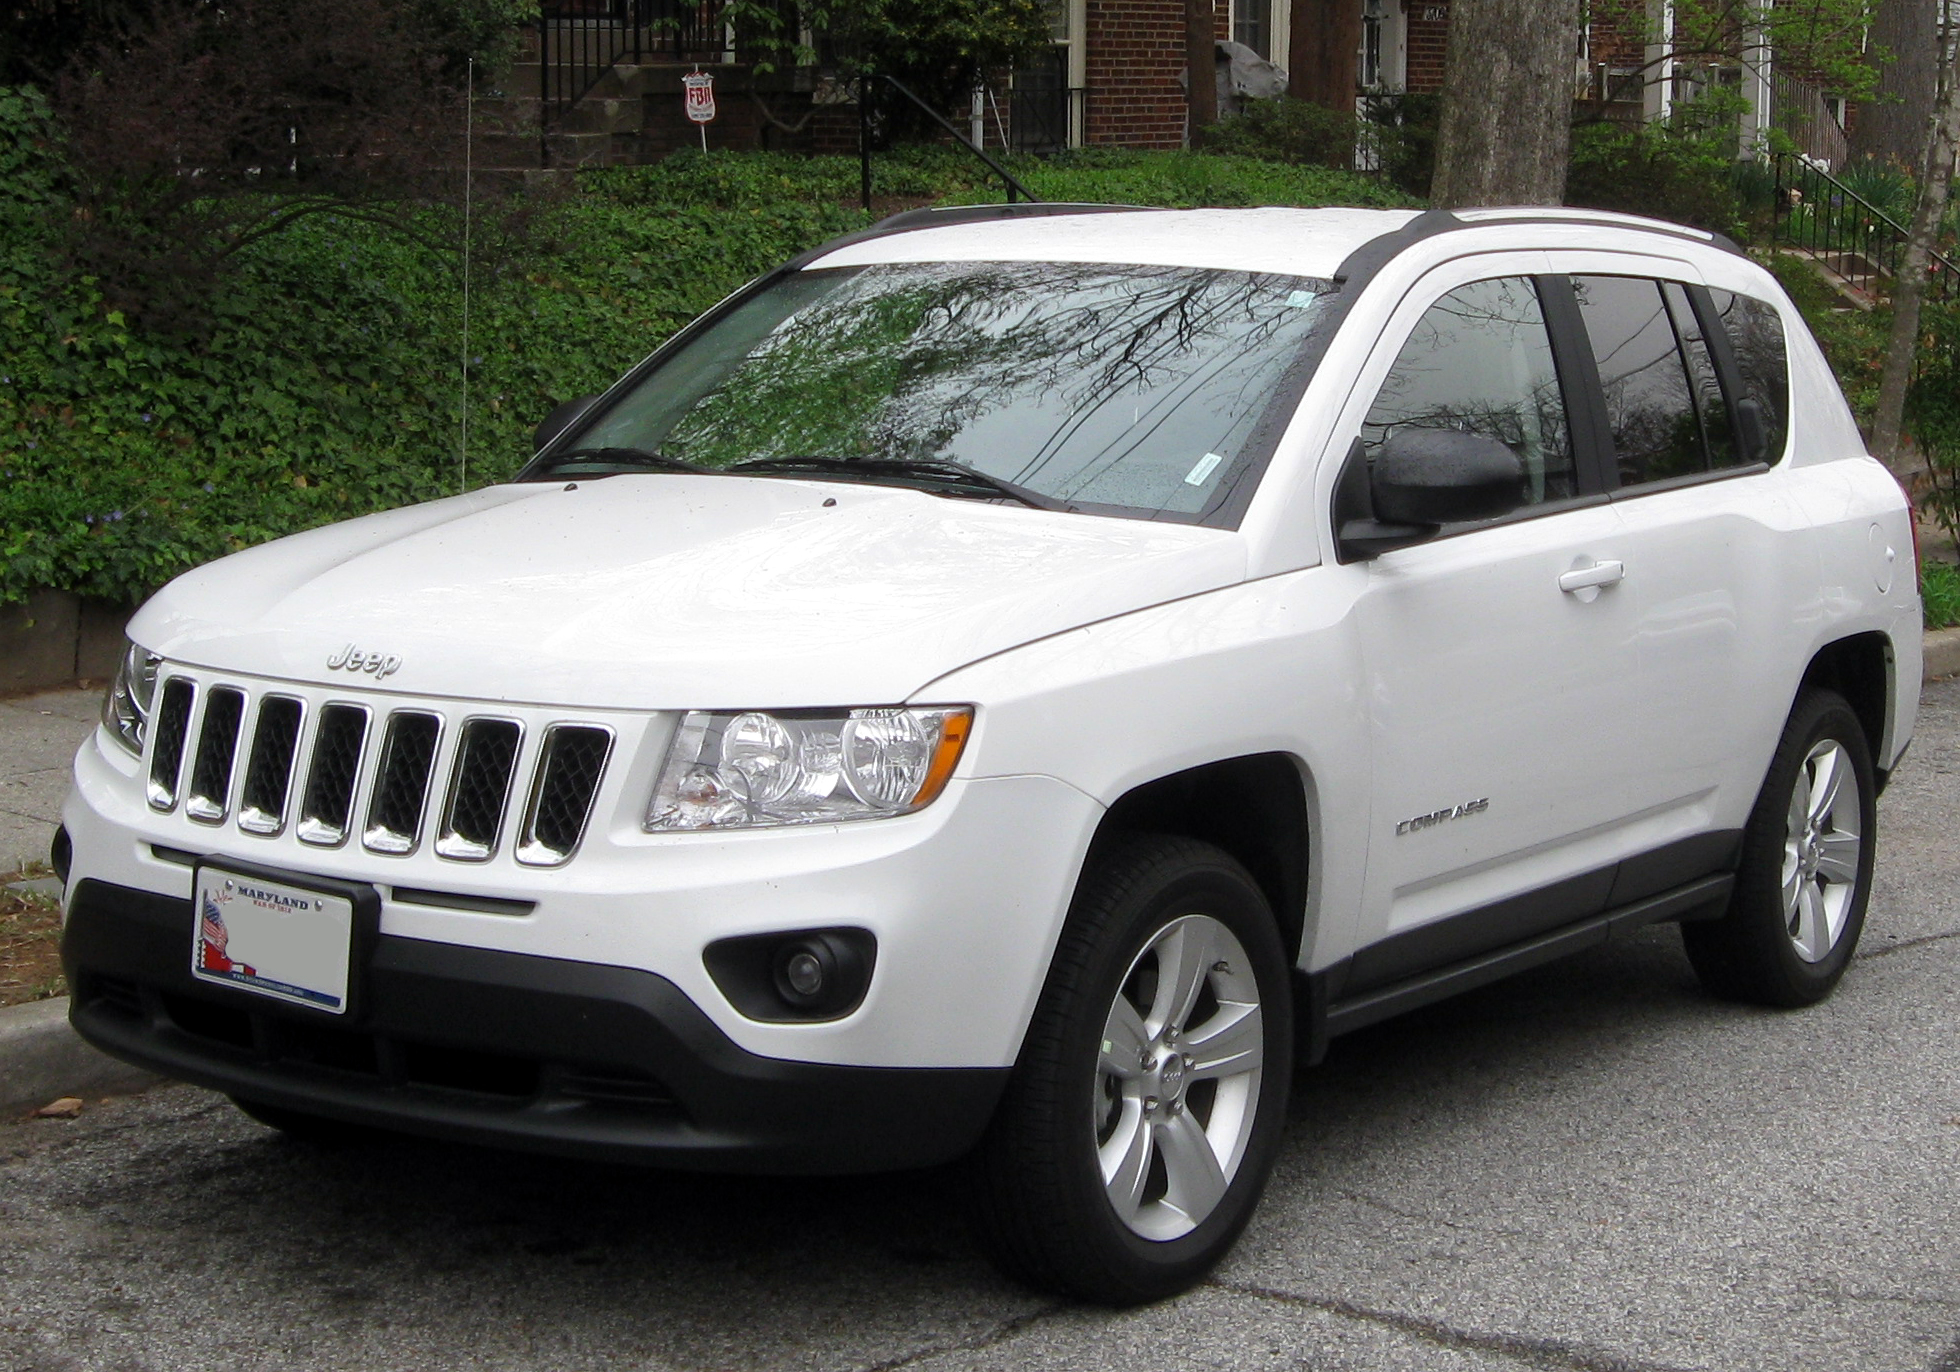 2012 jeep compass information and photos zombiedrive. Black Bedroom Furniture Sets. Home Design Ideas